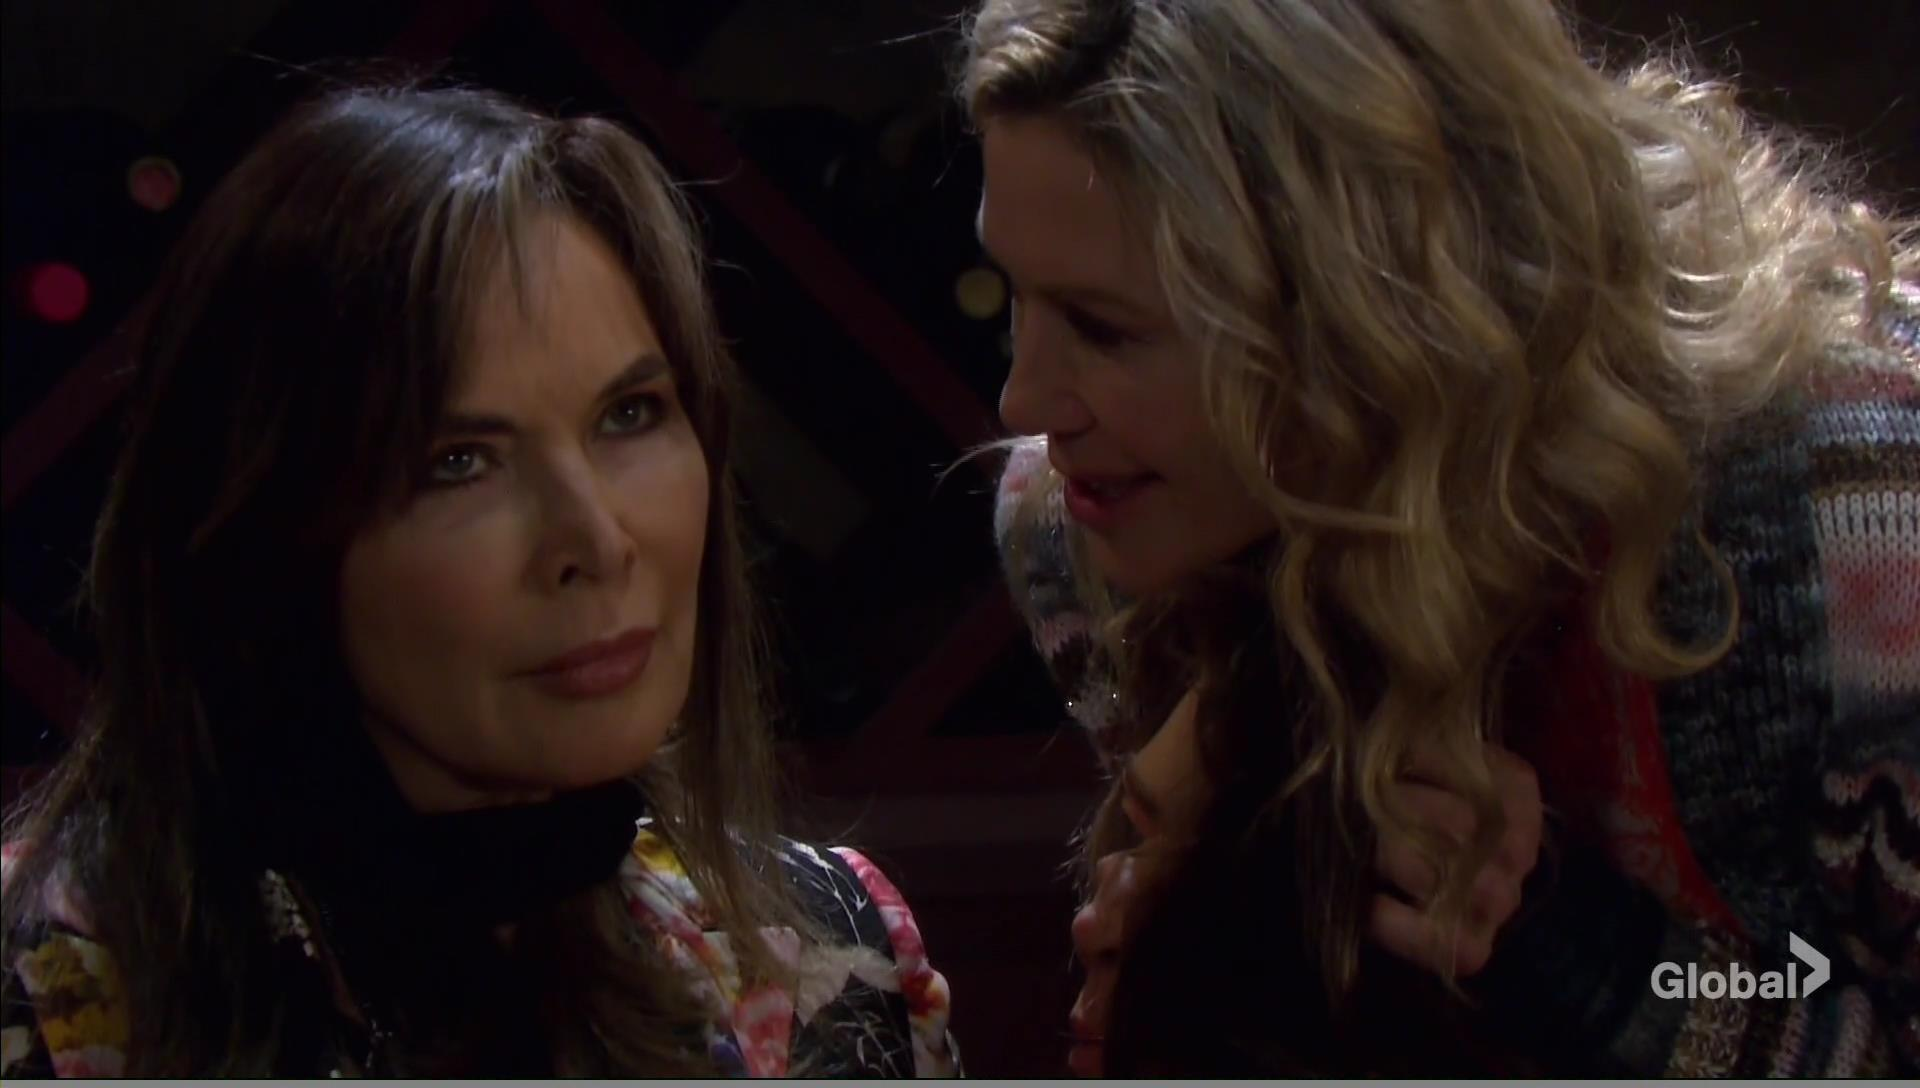 kate sees kate mask days of our lives